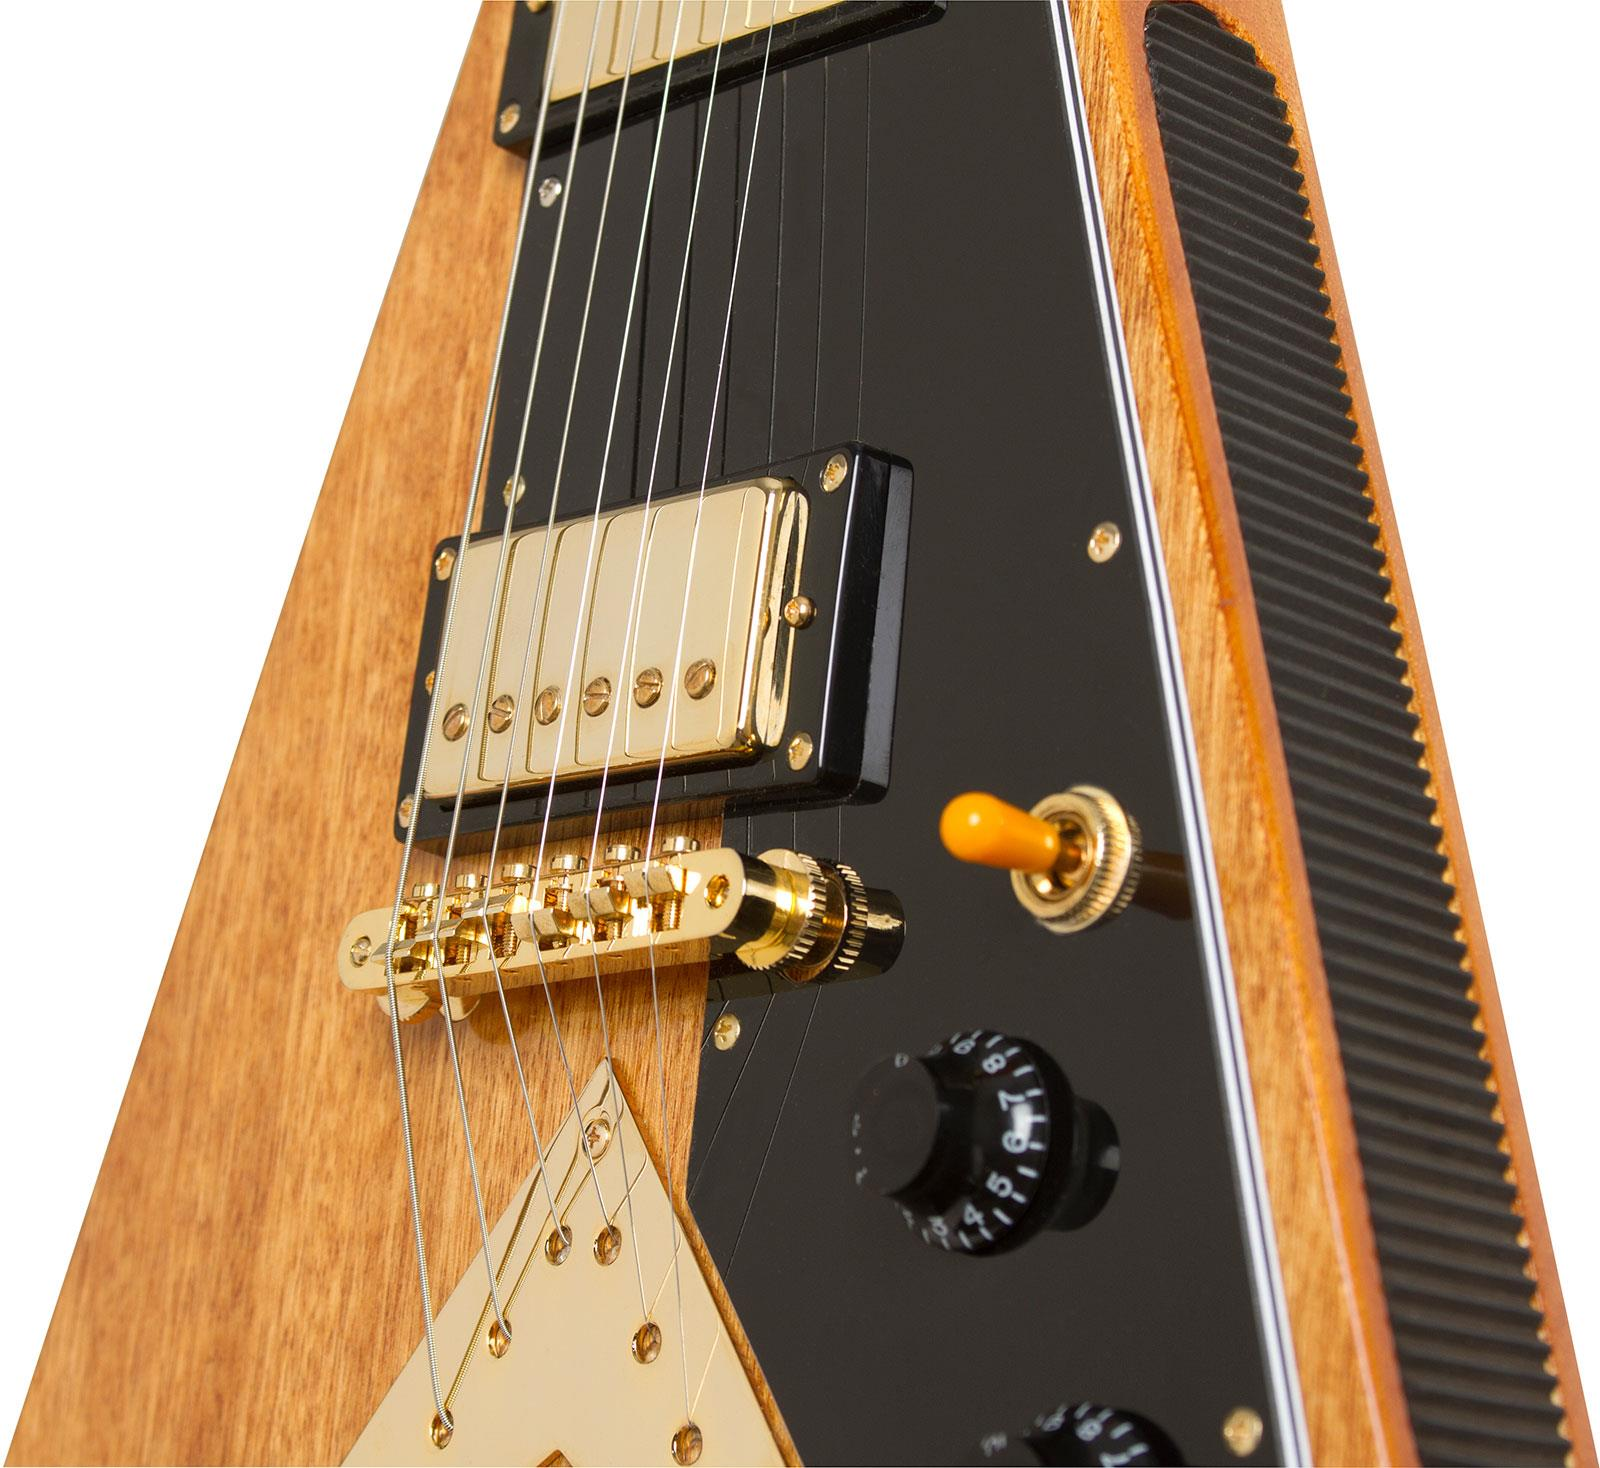 Epiphone flying v / Best container store products